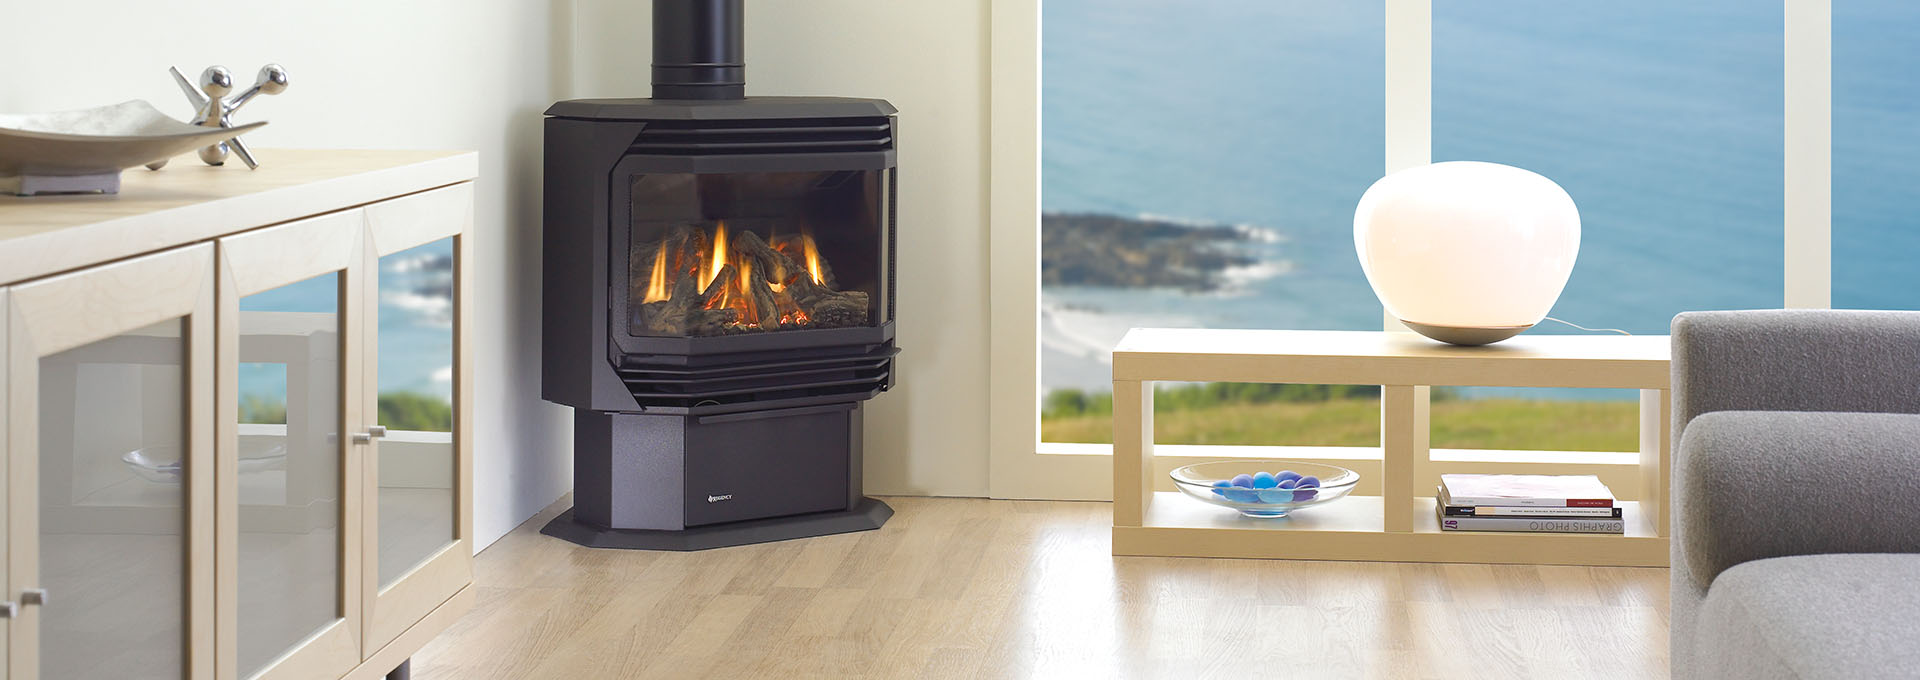 gas stoves regency fireplace products rh regency fire com gas stove fireplaces madison wi gas fireplace stoves reviews